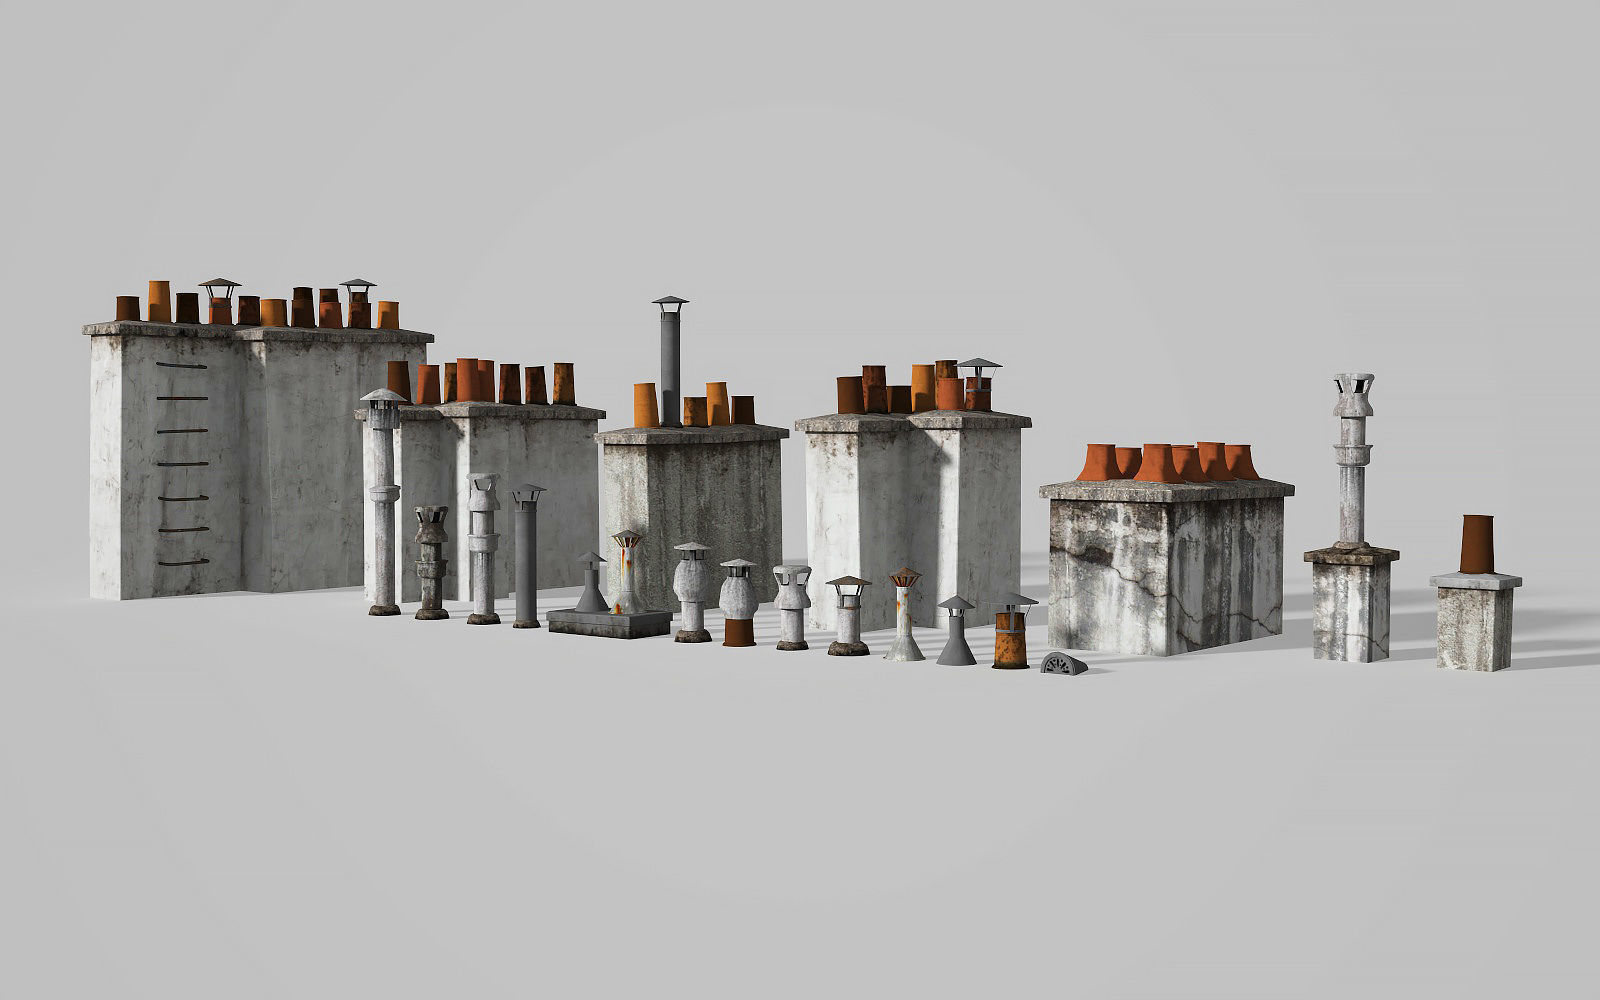 Chimneys and vents